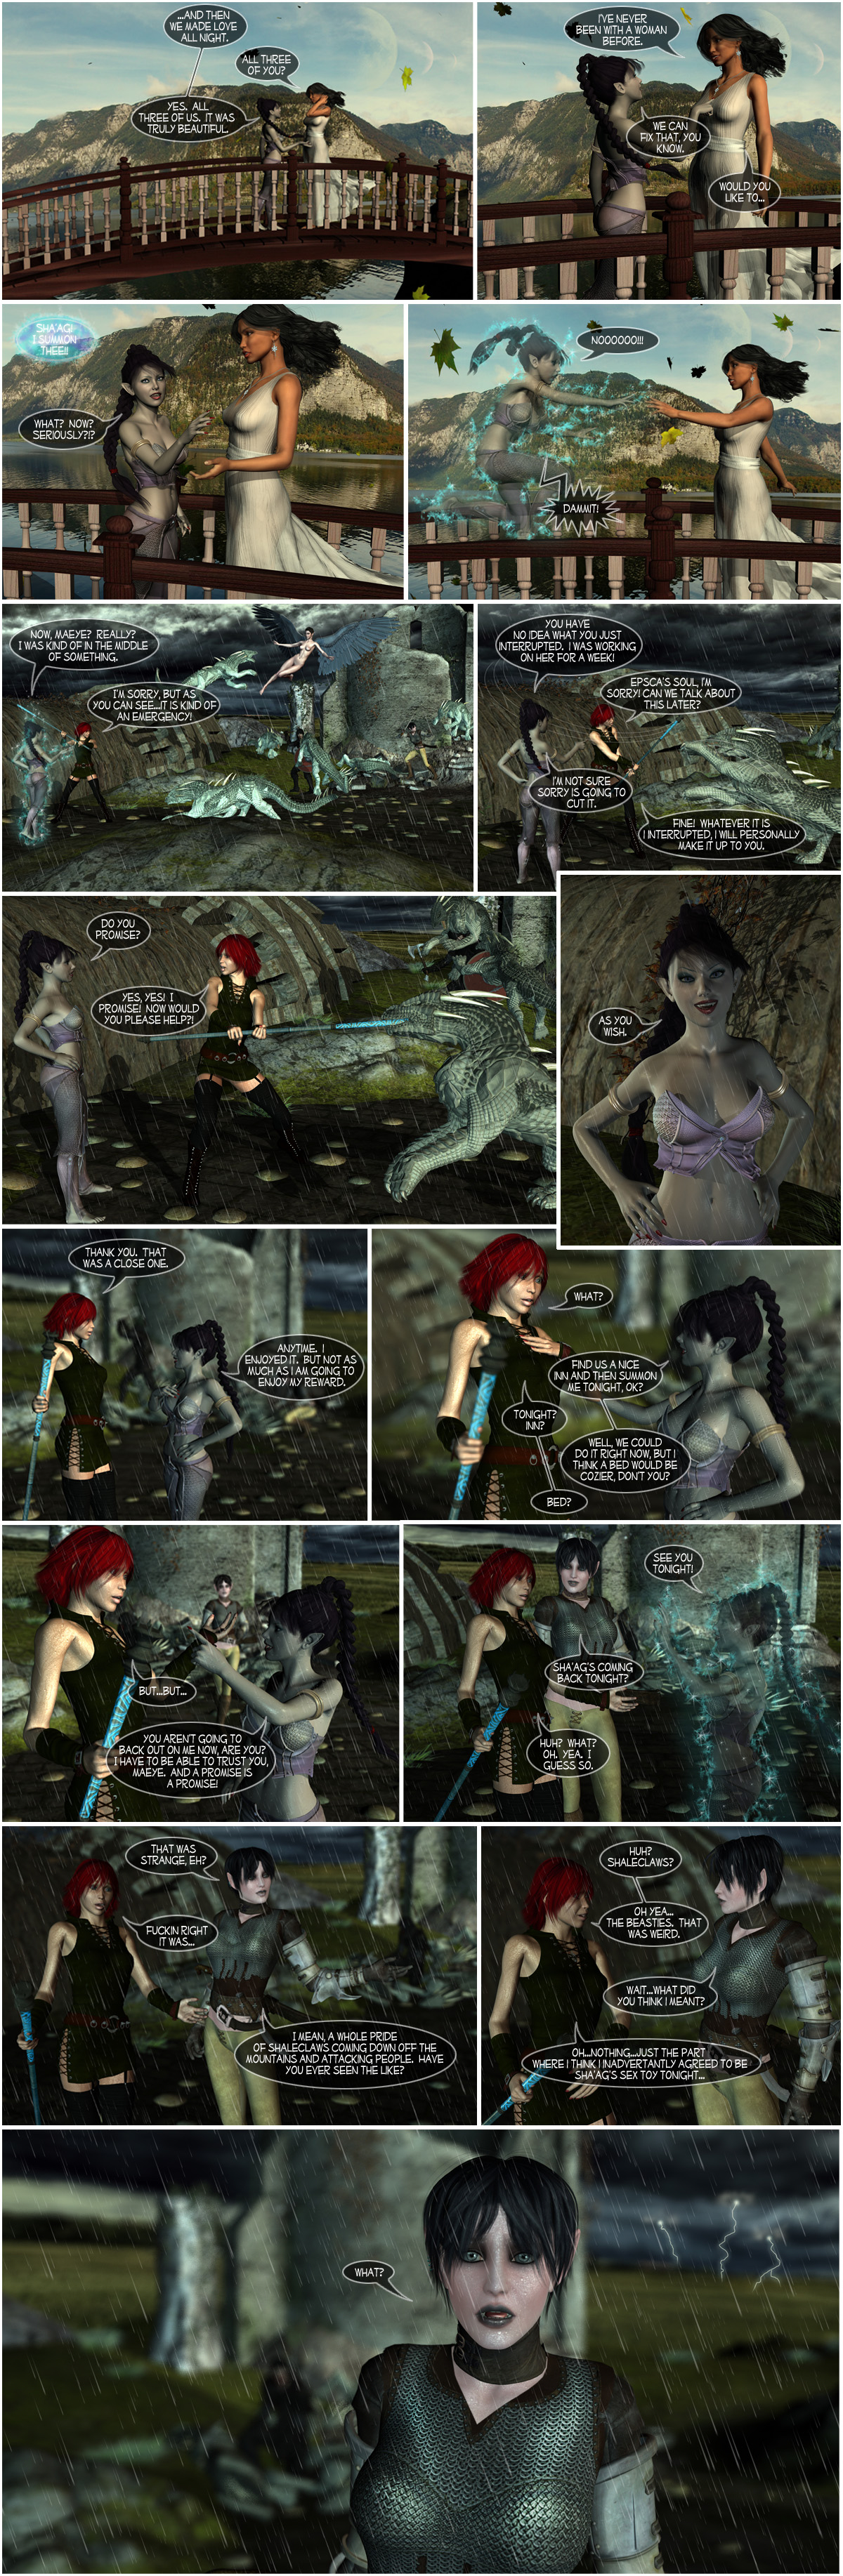 Book 1, Chapter 5, Page 2